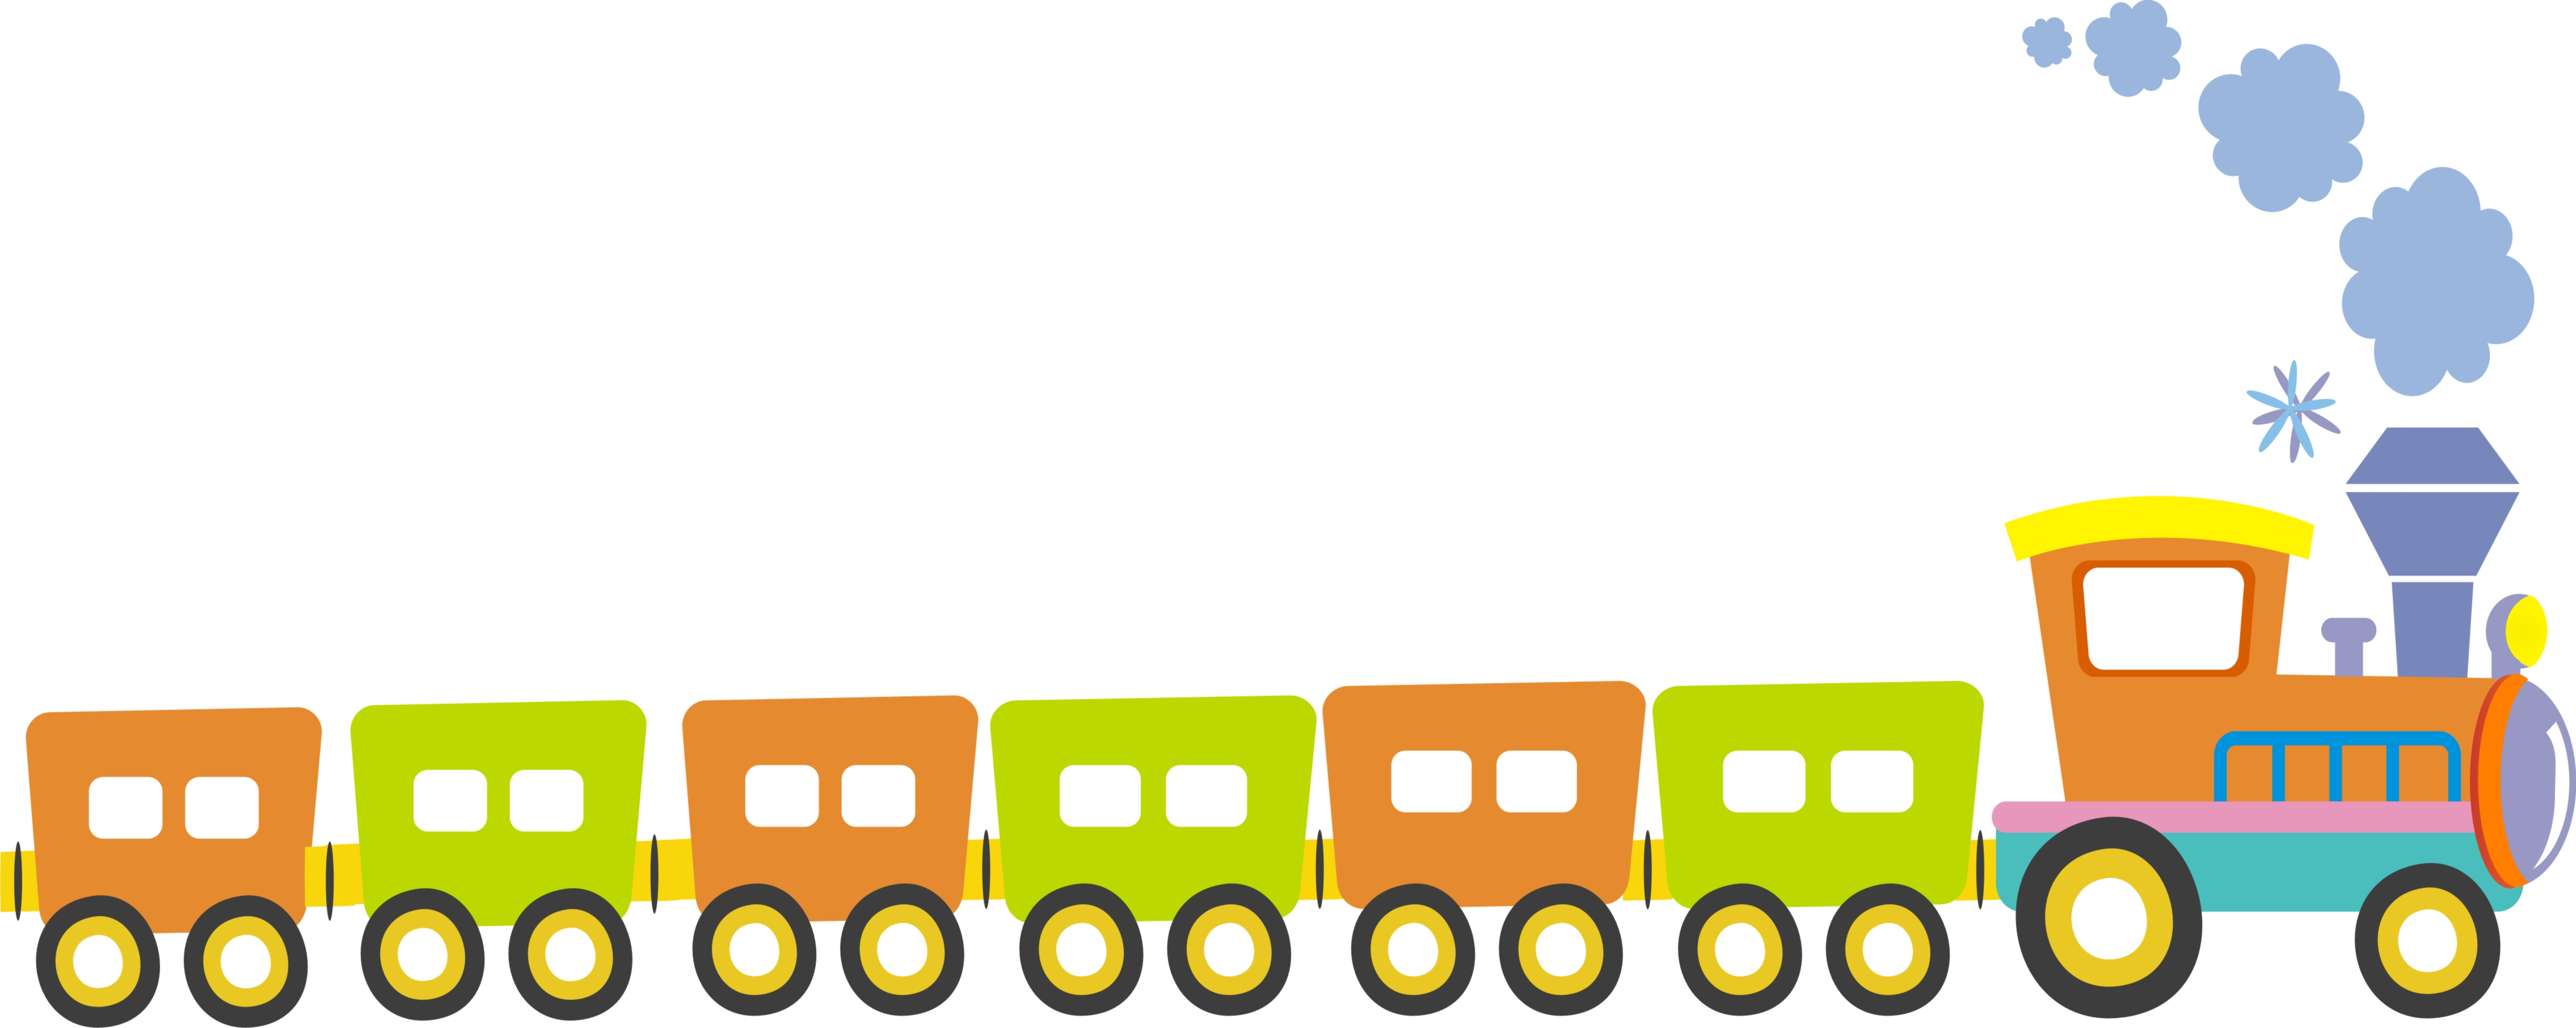 Cartoon Train Clipart at GetDrawings.com.